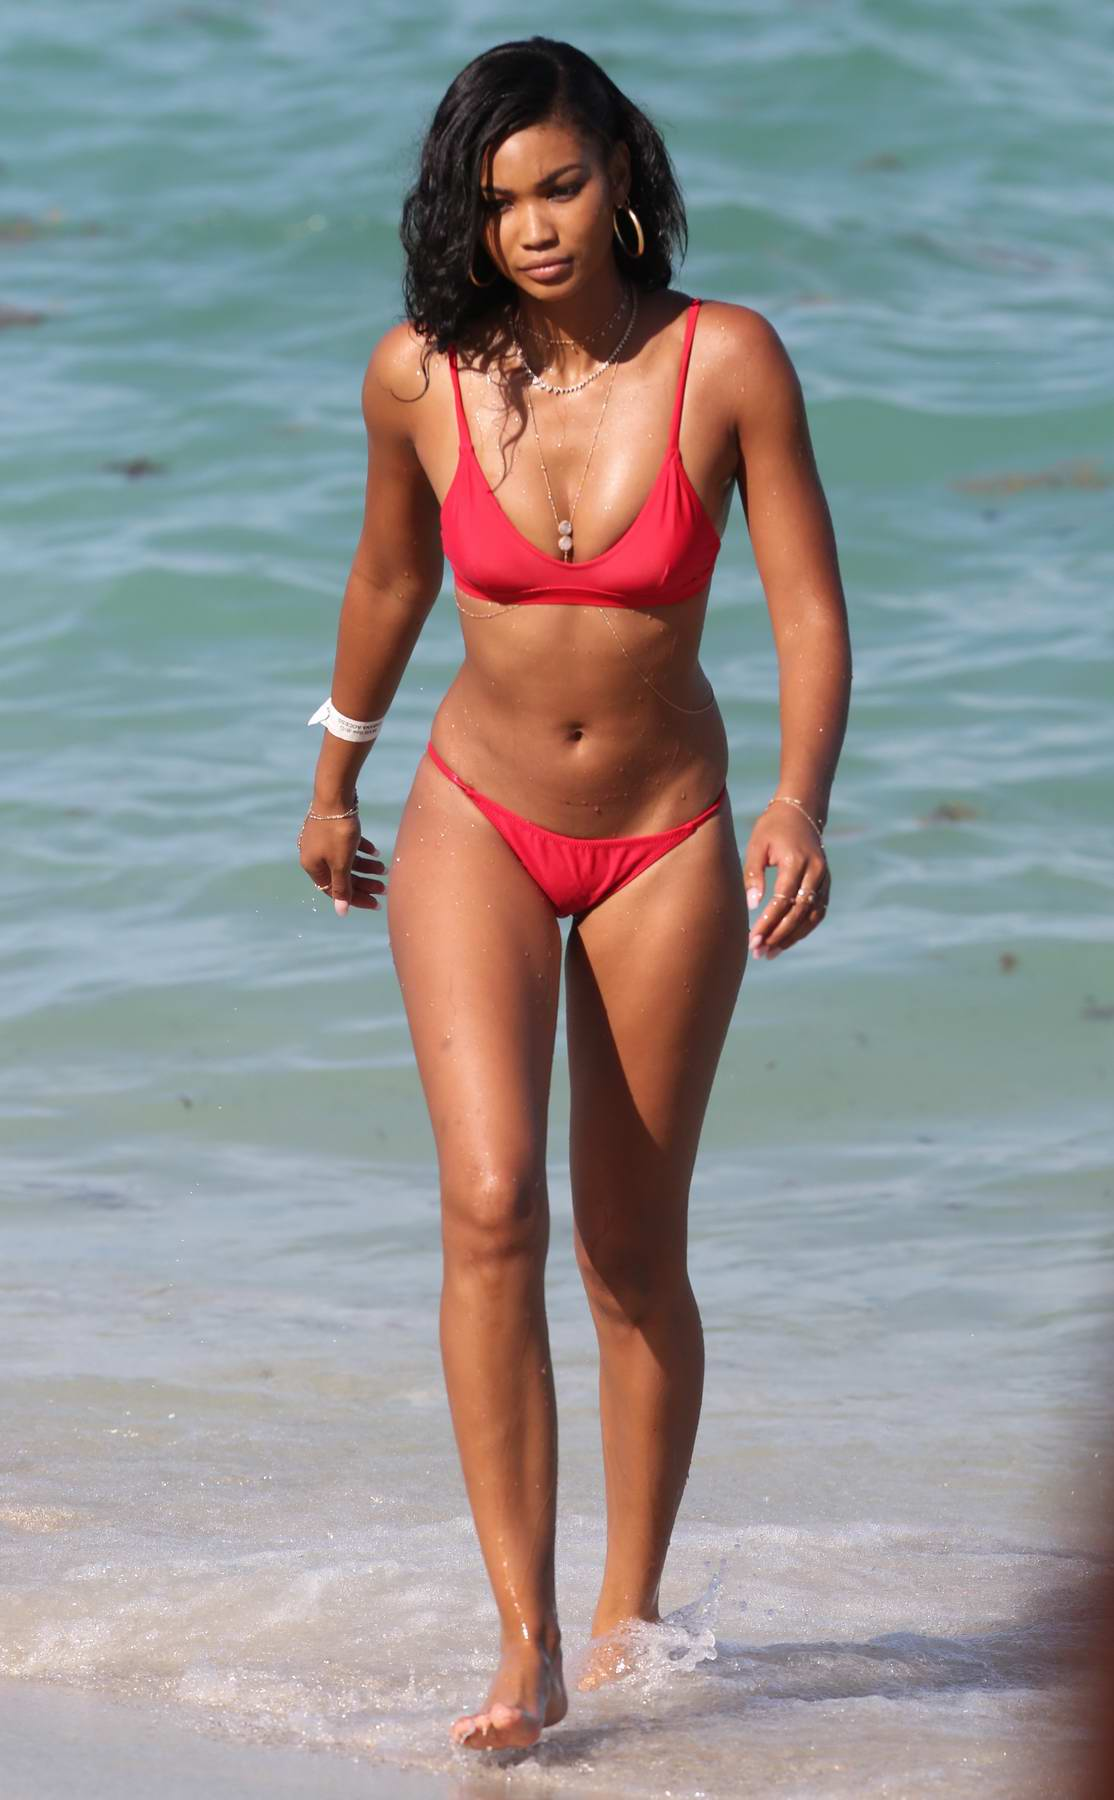 Chanel Iman in a Red Bikini enjoying the Beach with Friends in Miami